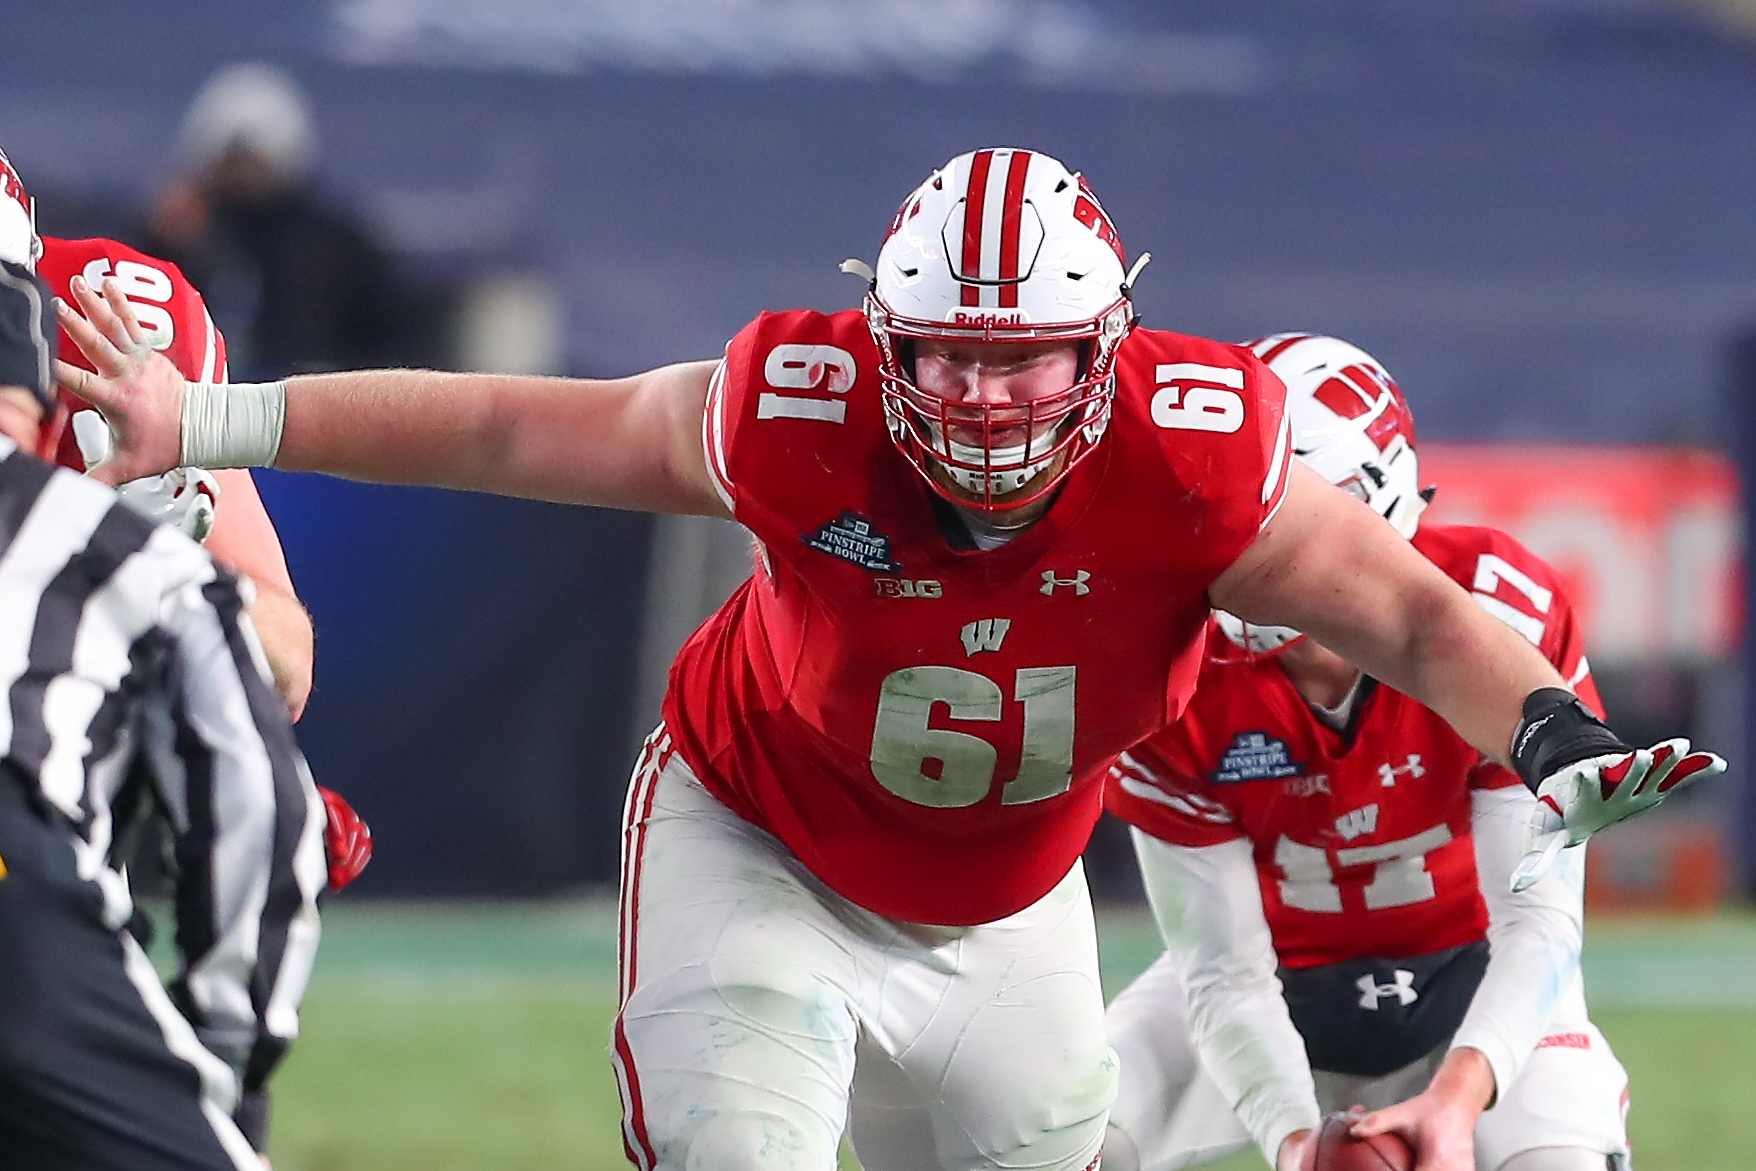 Wisconsin Badgers OL Tyler Biadasz during the 2018 New Era Pinstripe Bowl against the Miami Hurricanes, Dec. 27, 2018.